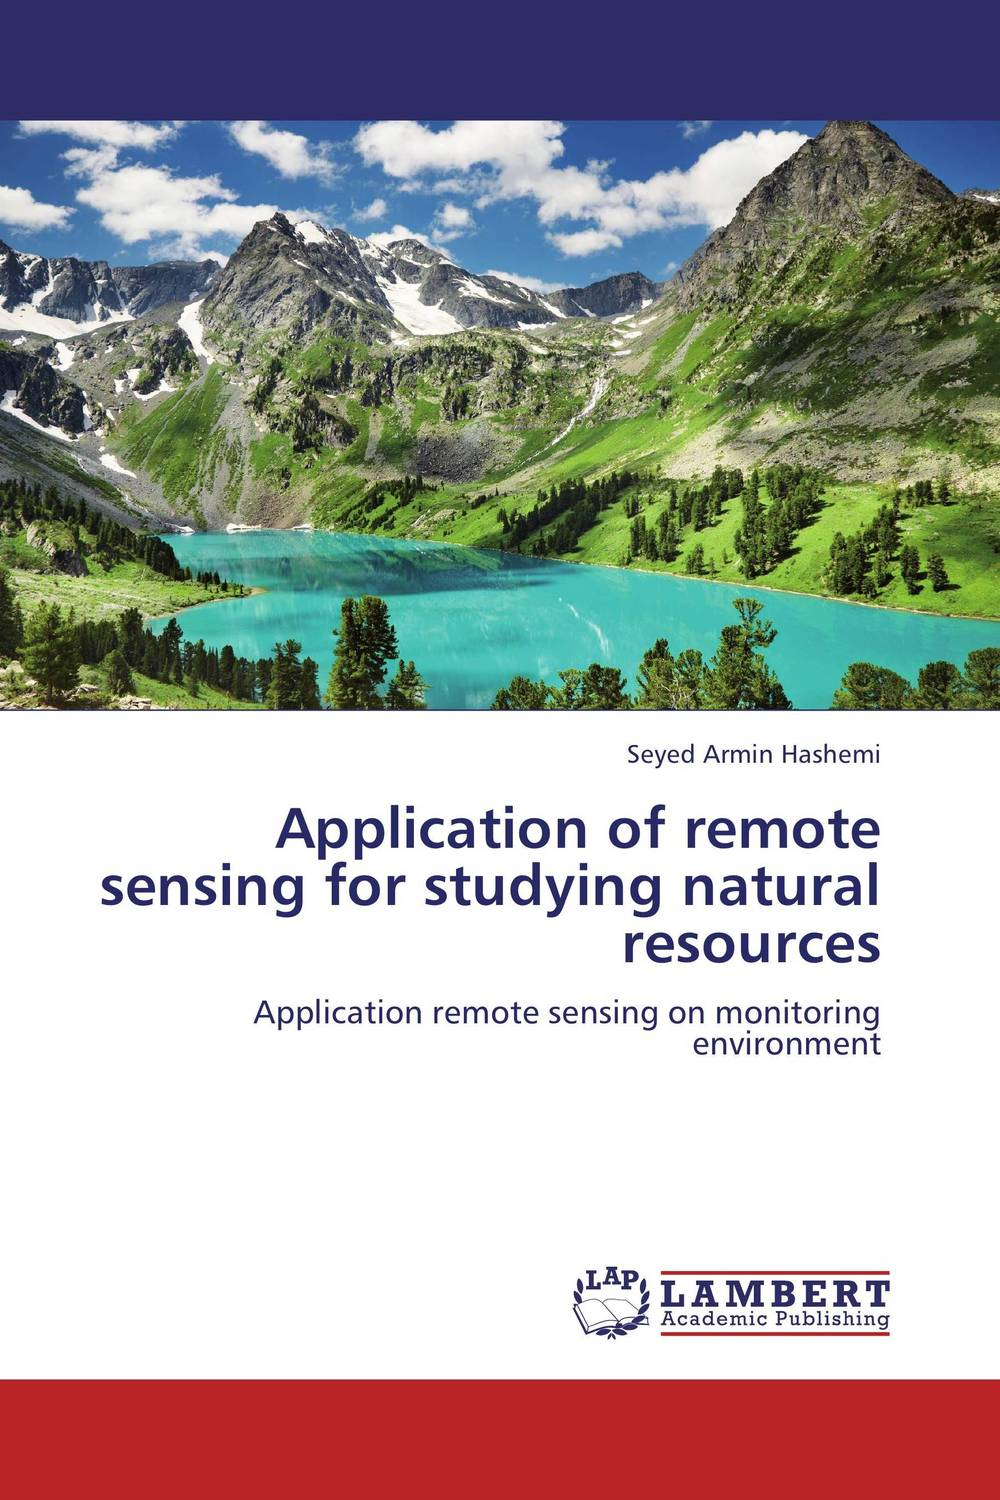 Application of remote sensing for studying natural resources remote sensing inversion problems and natural hazards asradvances in space research volume 21 3